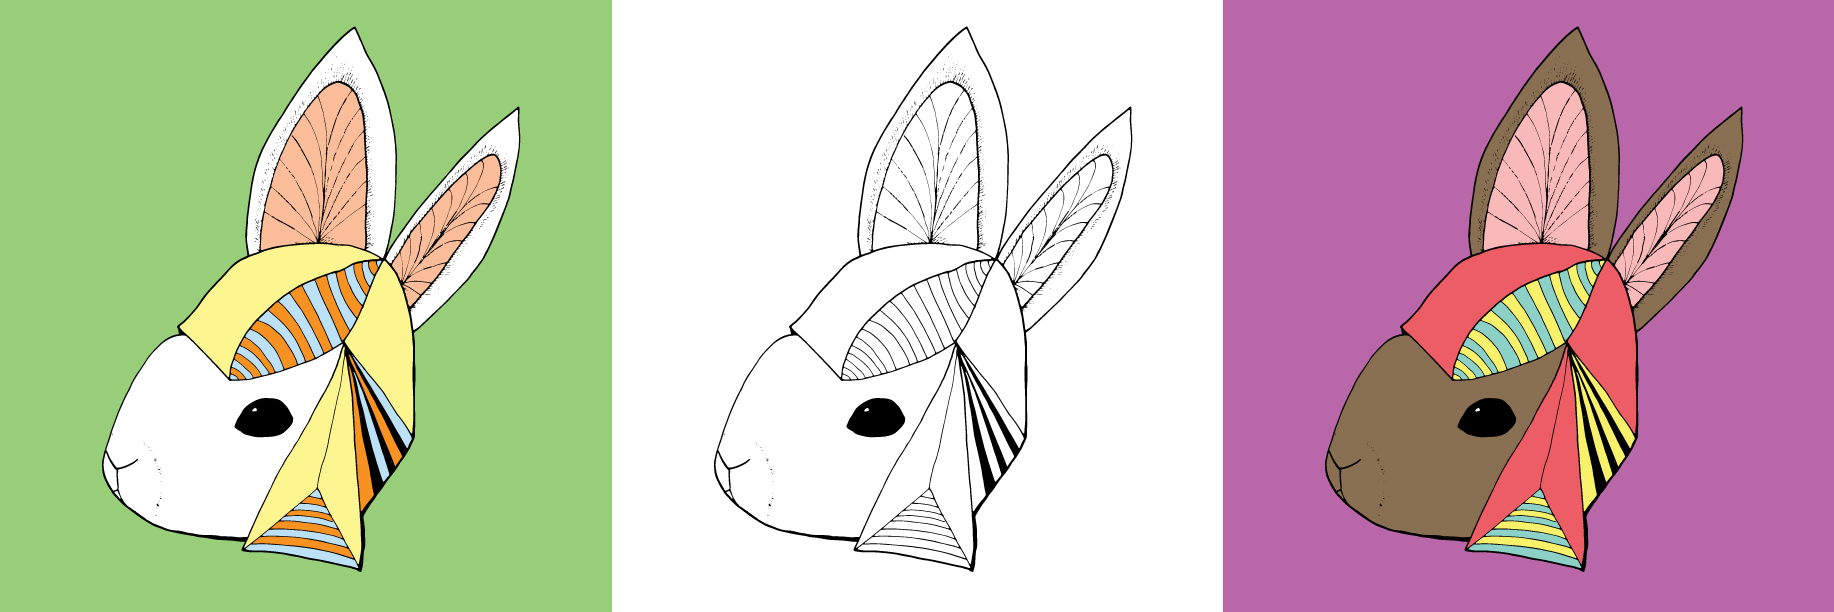 Annex Collections - Art by Brina Schenk - Custom Art Print Rabbit wearing a hat